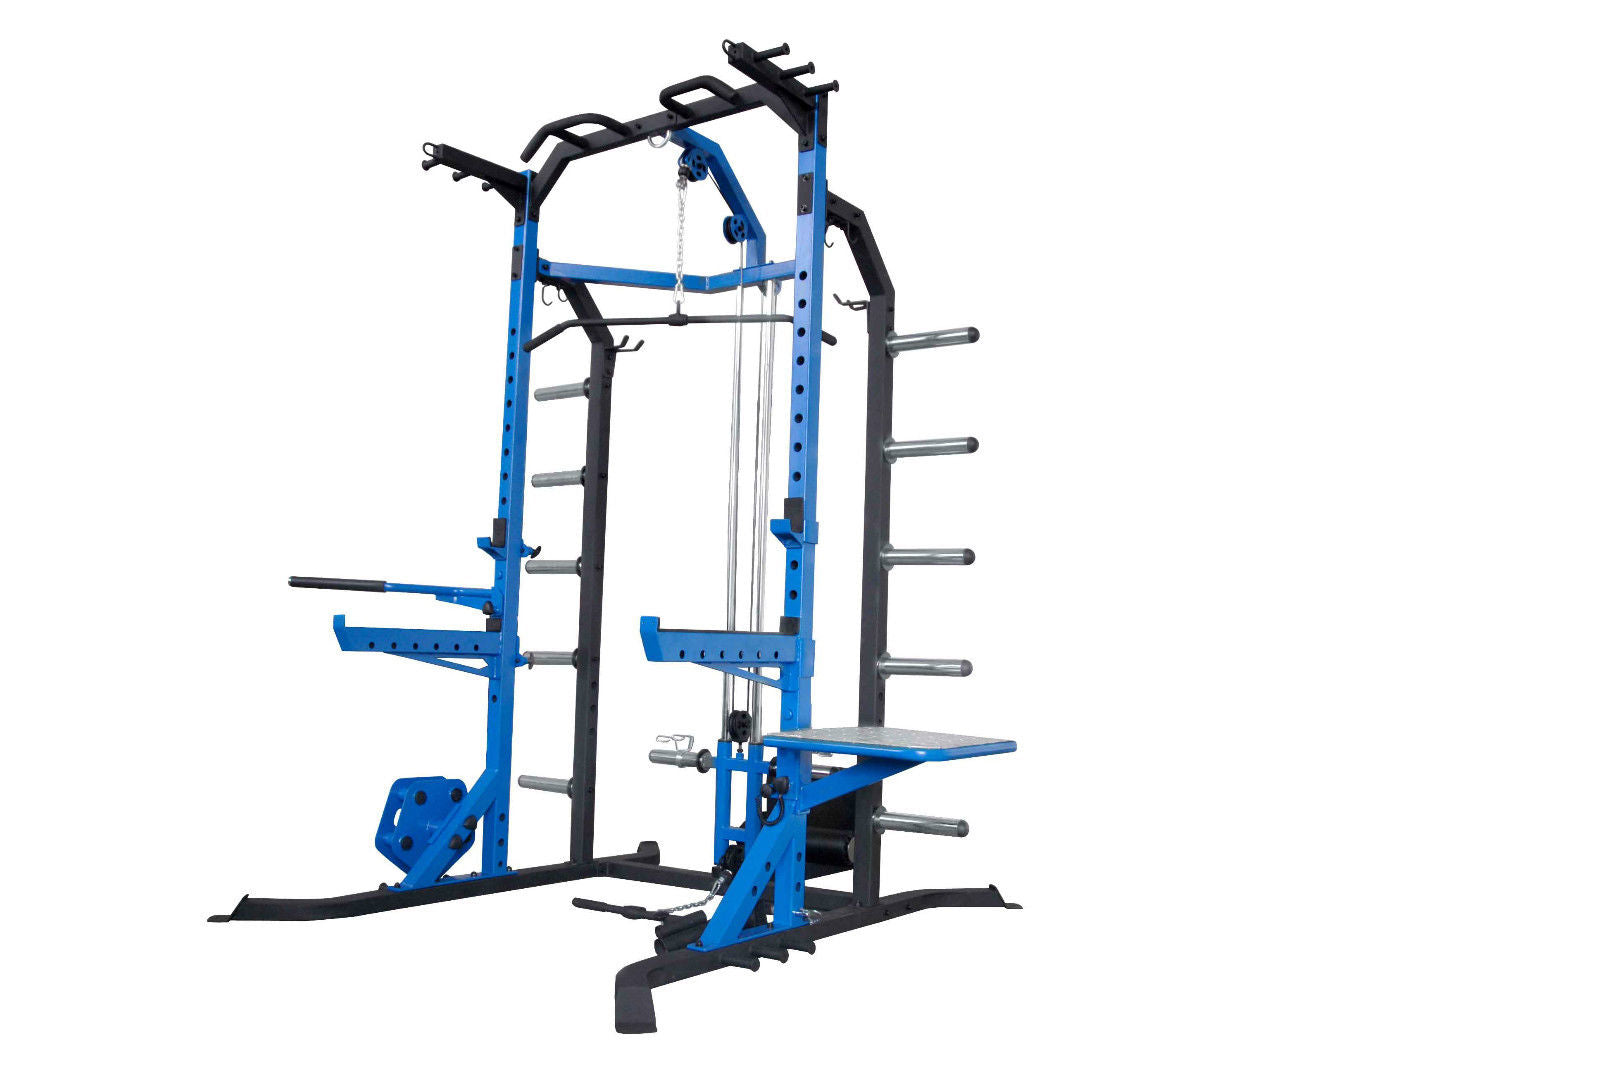 Half Rack Power Cage multi gym from WeRSports